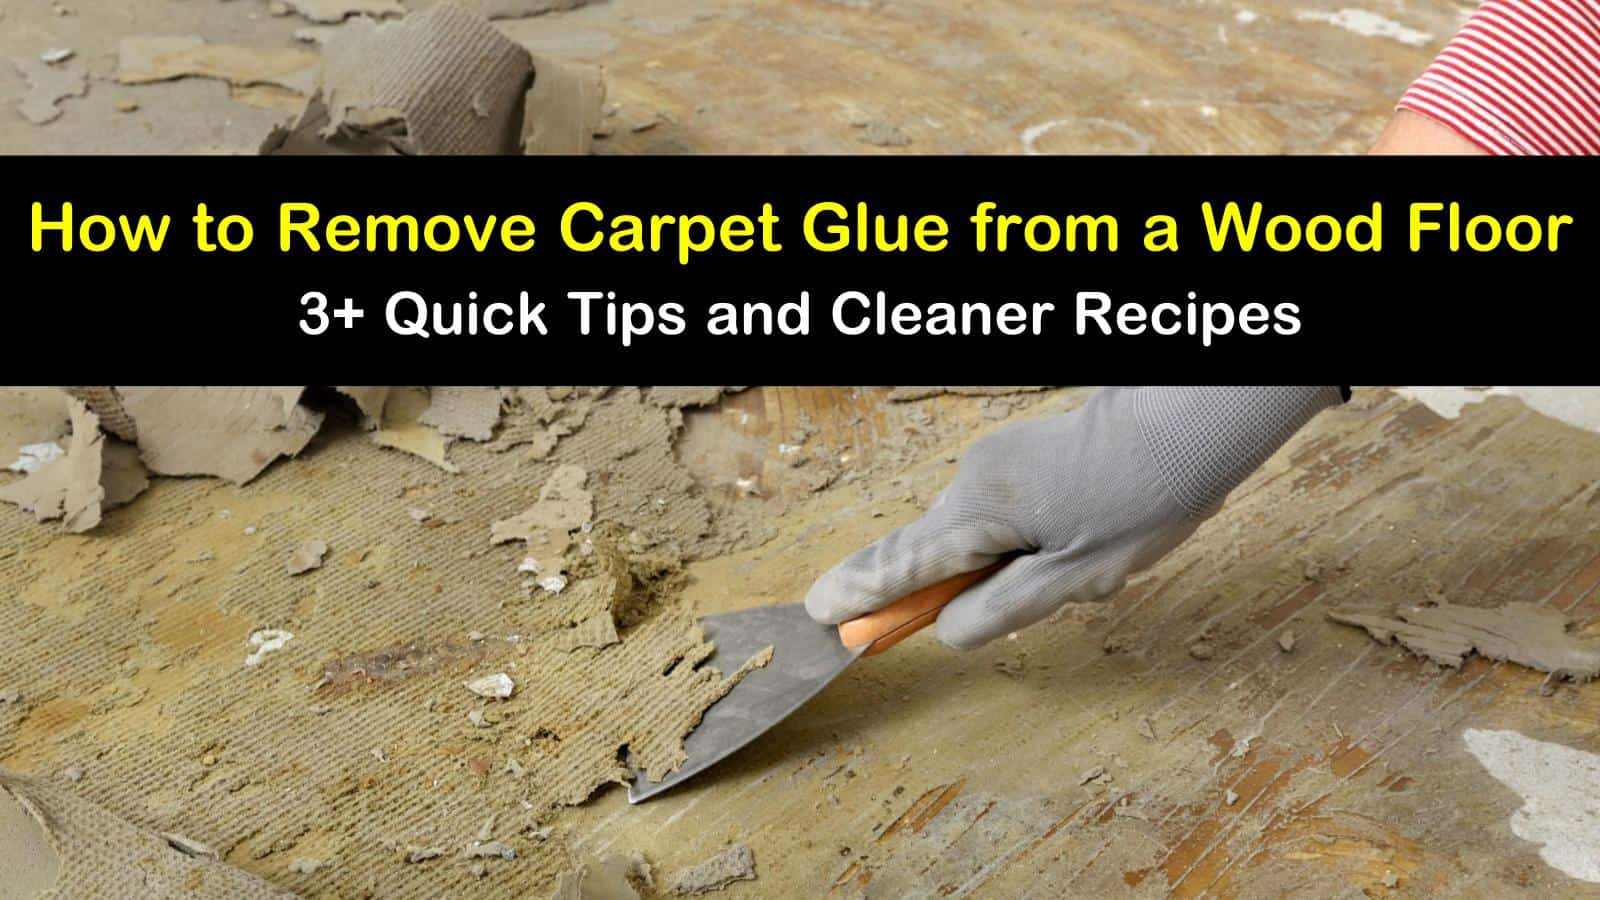 To Remove Carpet Glue From A Wood Floor